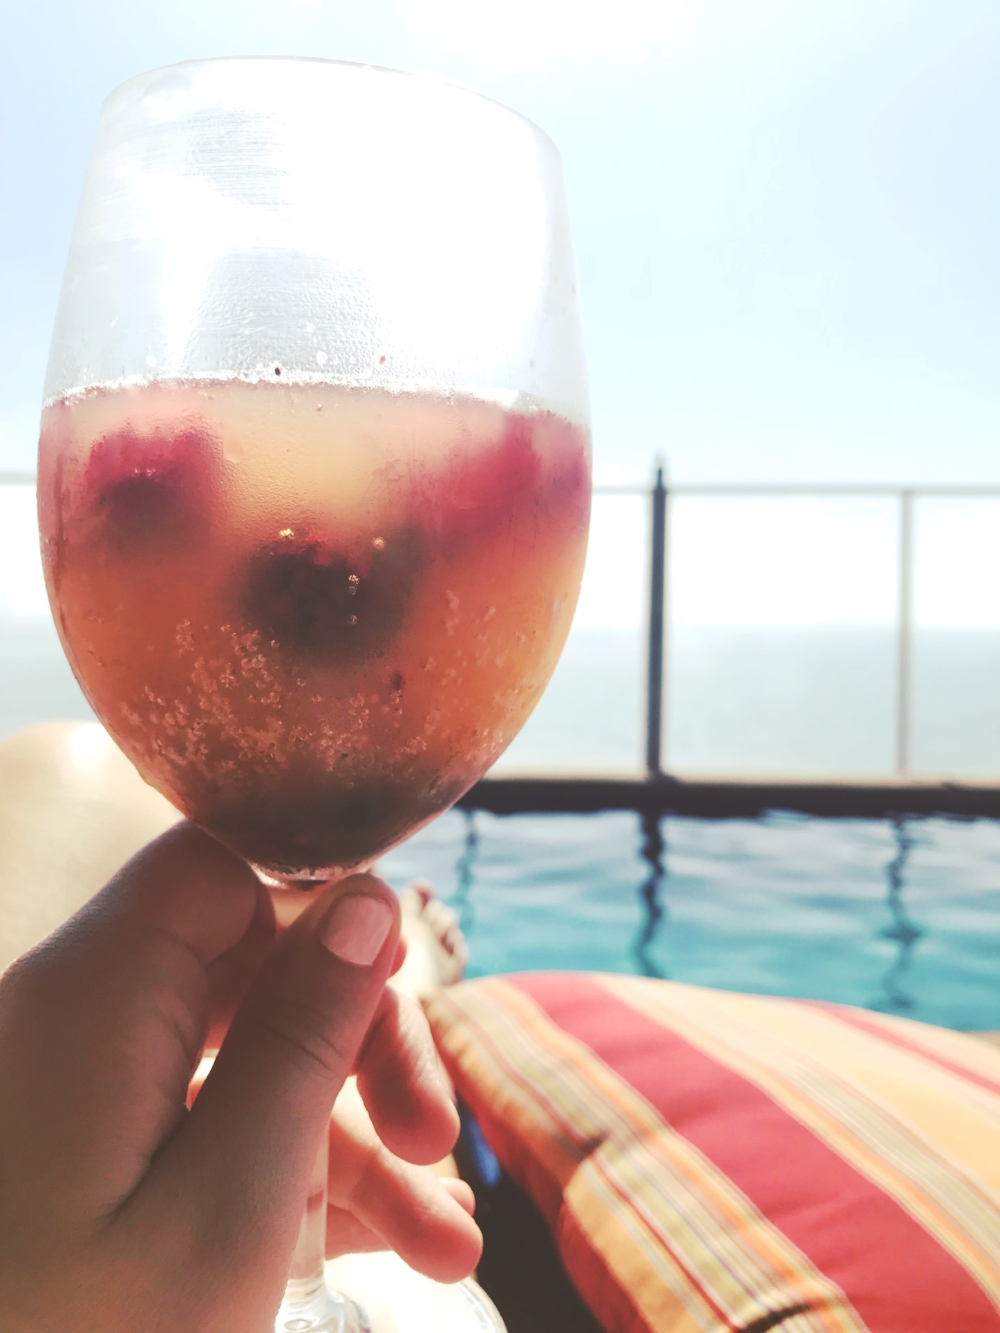 peach-sparking-water-frozen-berries-pool-beach-refresh-vacation-mocktail.JPG